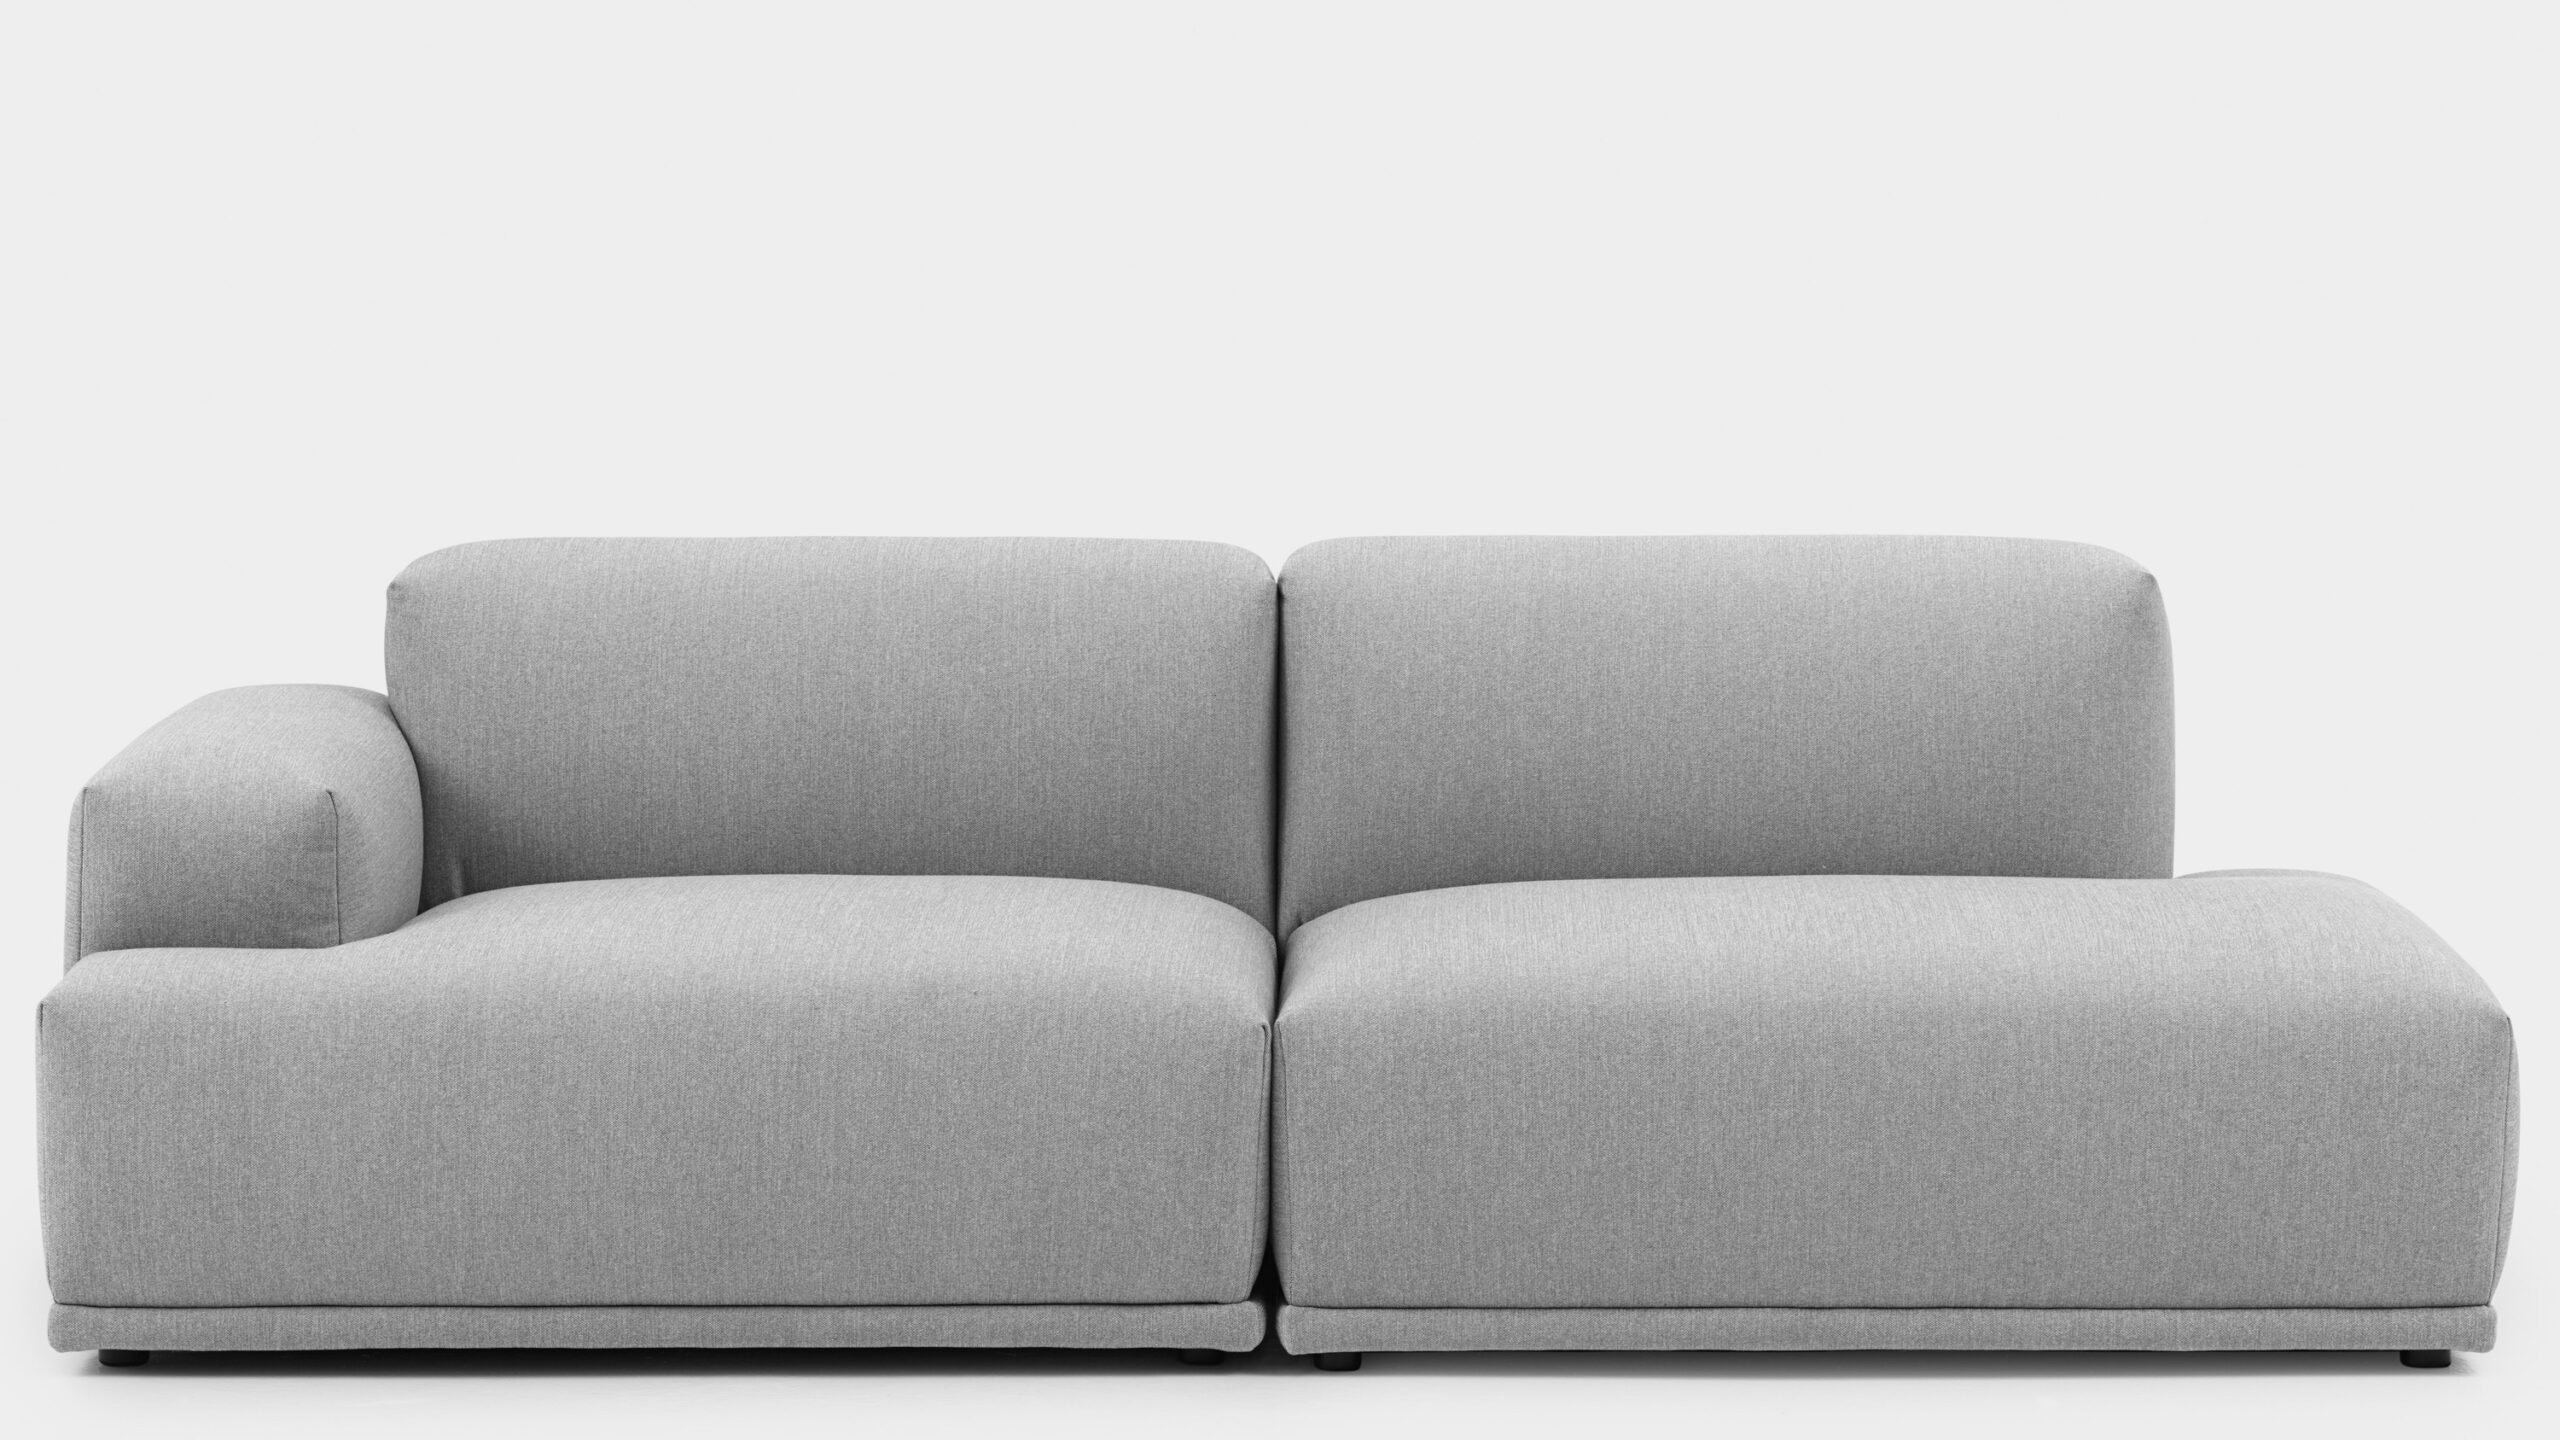 Full Size of Muuto Sofa Rest Sale Outline 3 1/2 Airy Sofabord Large Dba Compose Leather Tilbud Uk Xl Workshop Oslo 2 Seater Table Modular Cecilie Manz Furniture List Connect Sofa Muuto Sofa